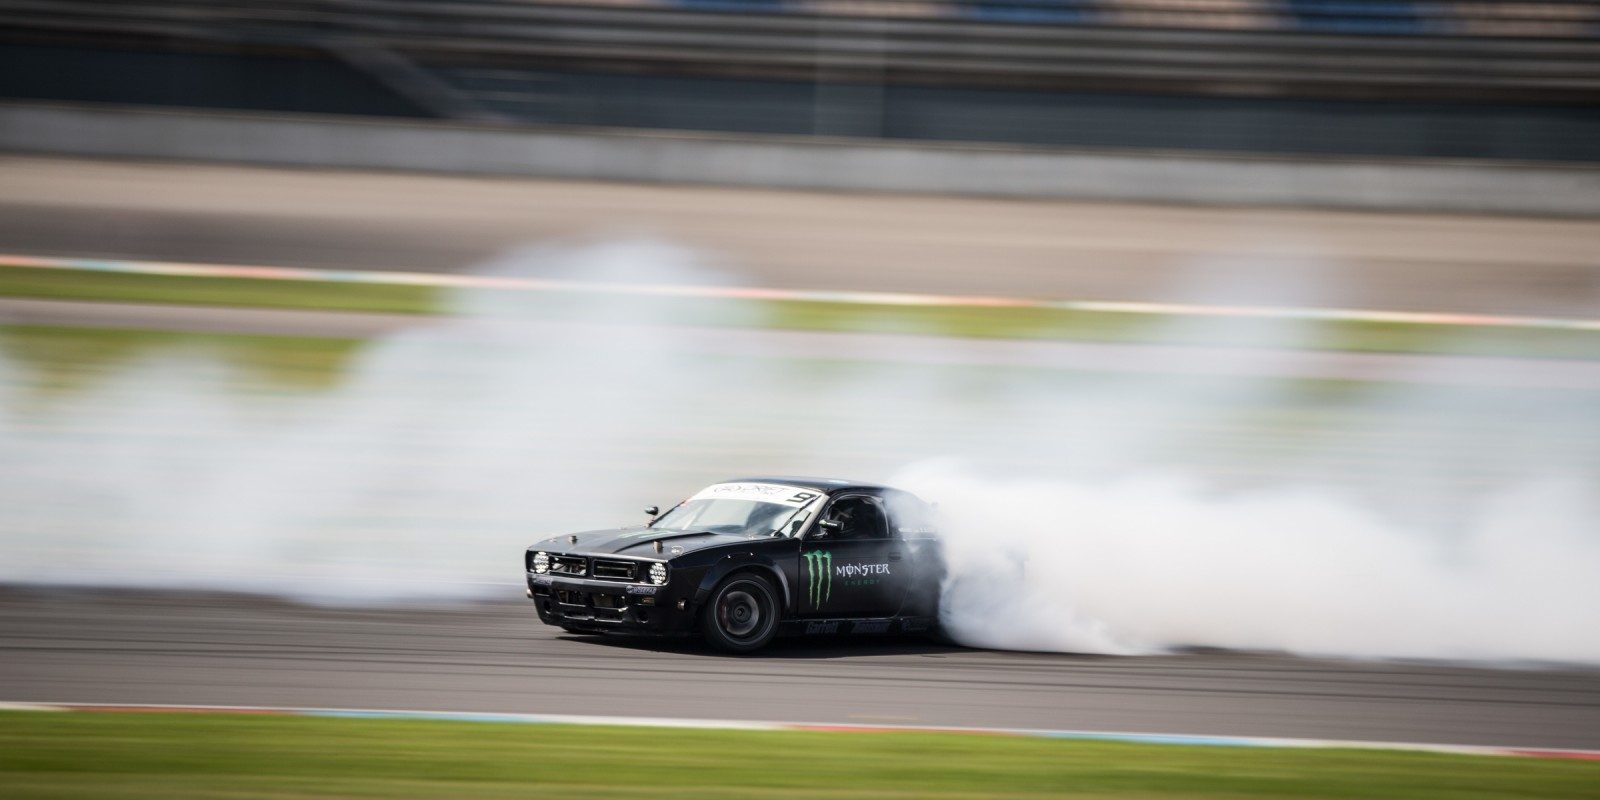 Images from round six of the 2016 Drift Allstars Championship in Germany